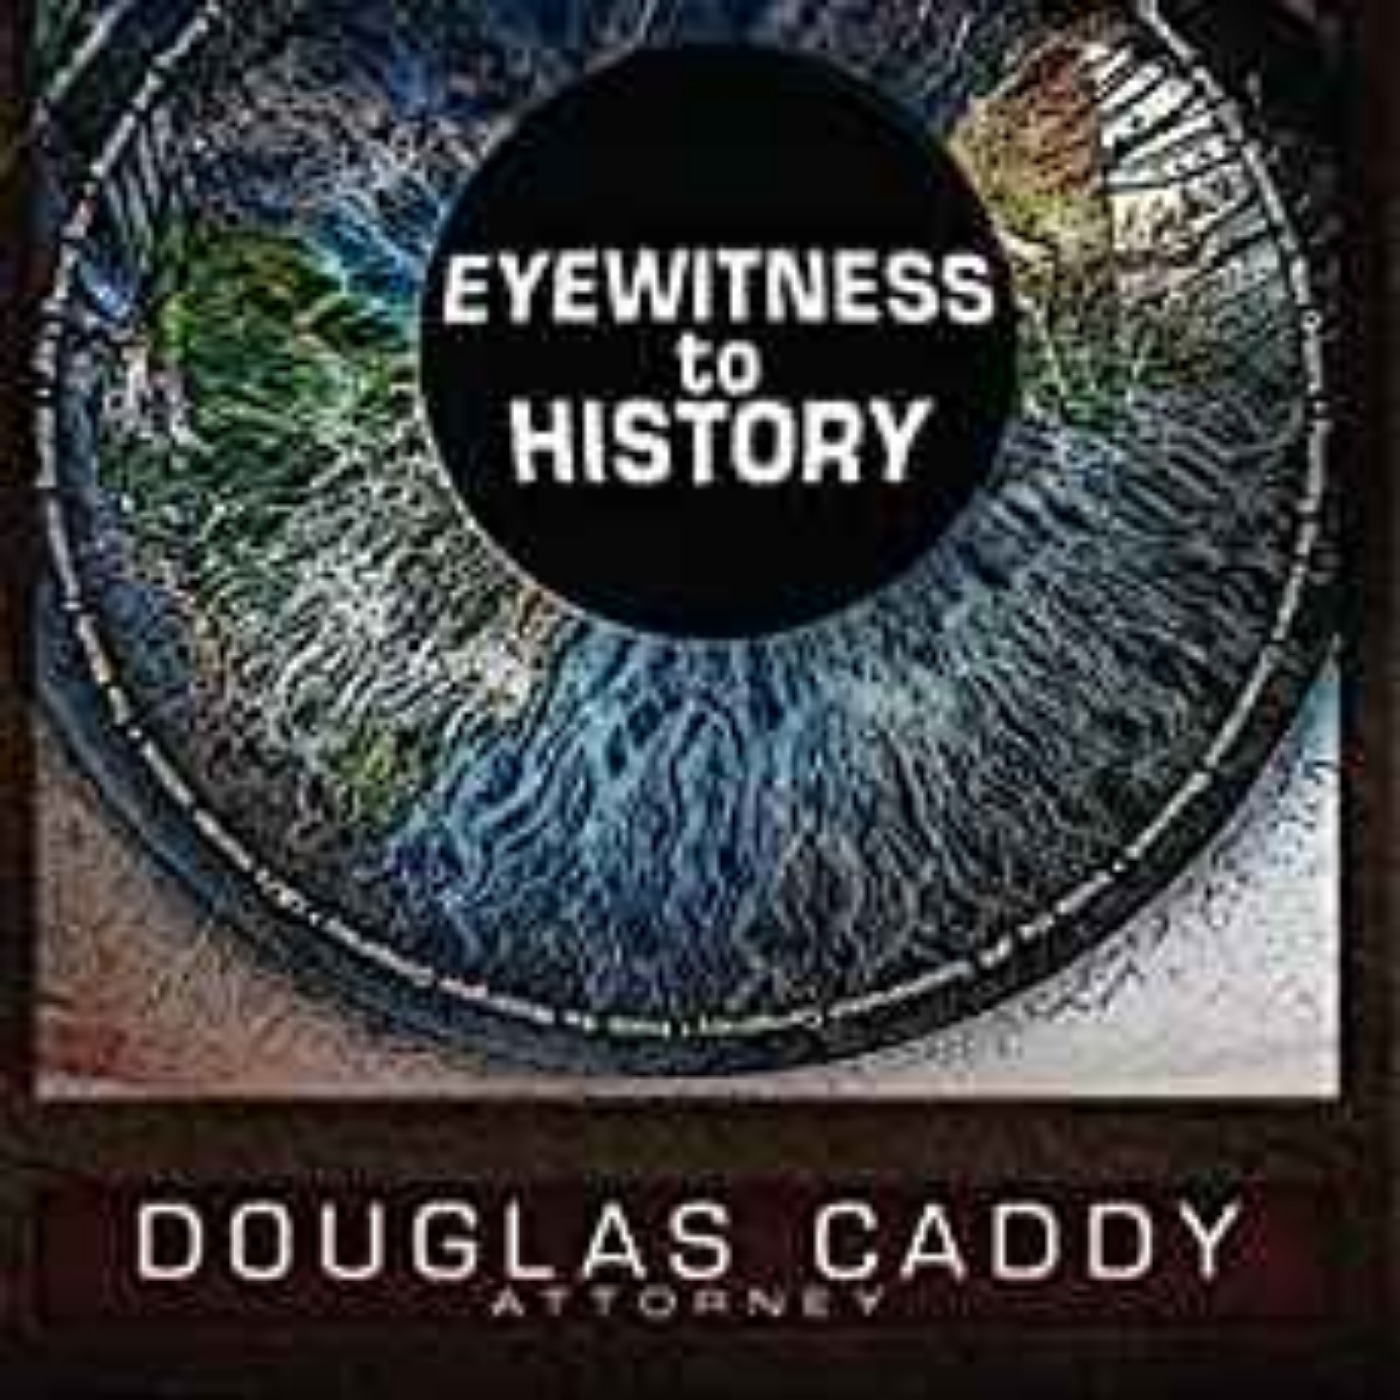 BEING THERE - DOUGLAS CADDY (JFK ASSASSINATION SERIES 2)